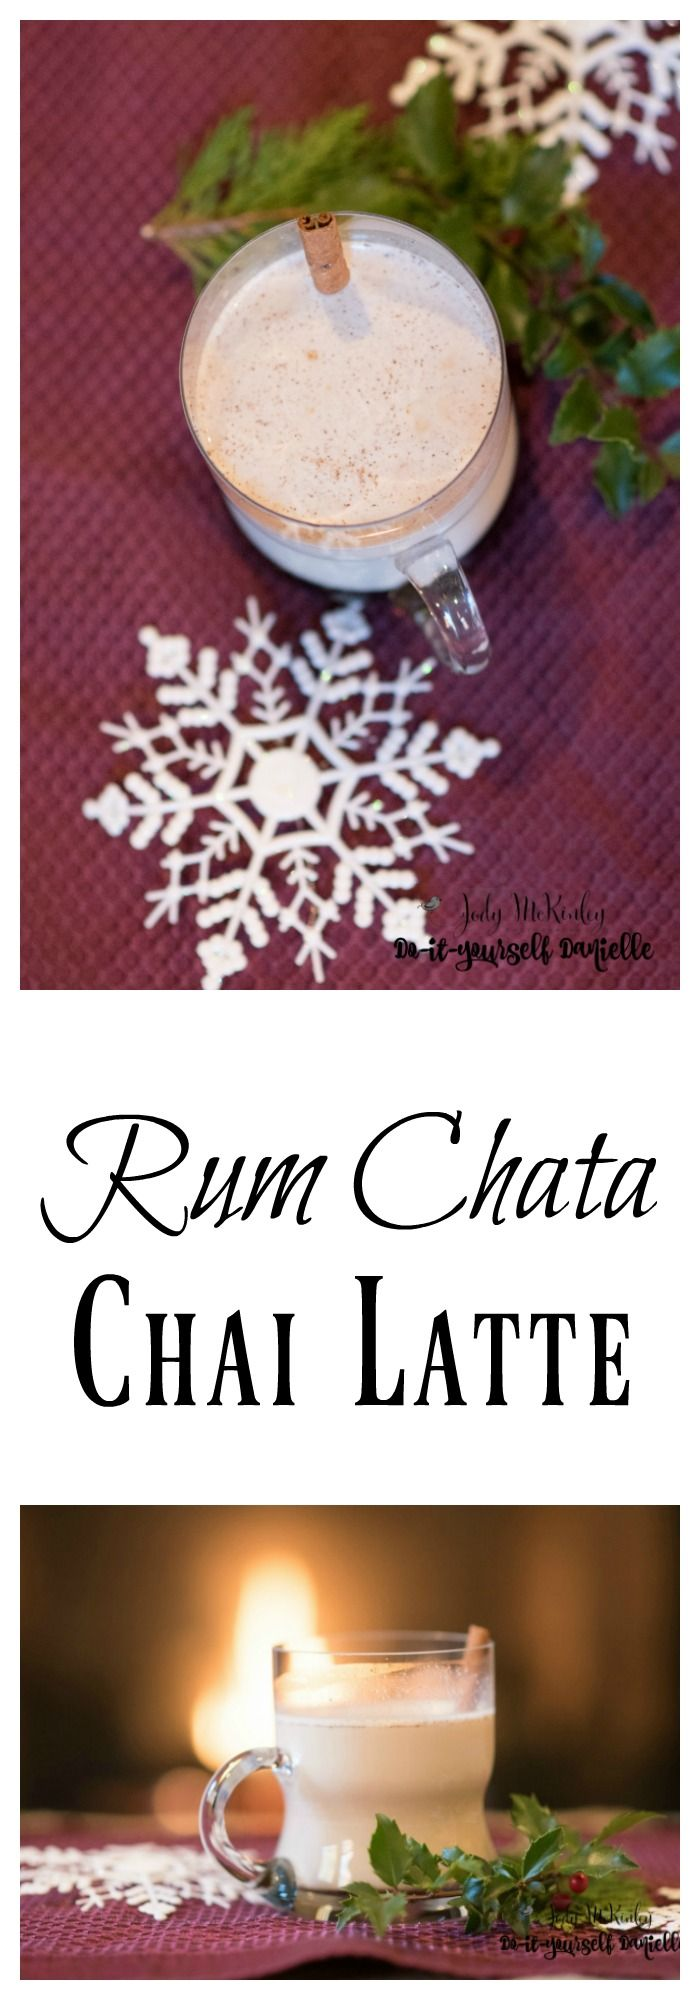 Rum Chata Chai Lattes can be served hot or cold, yum! These would make a great holiday drink.  #christmas #beverage #Cocktail